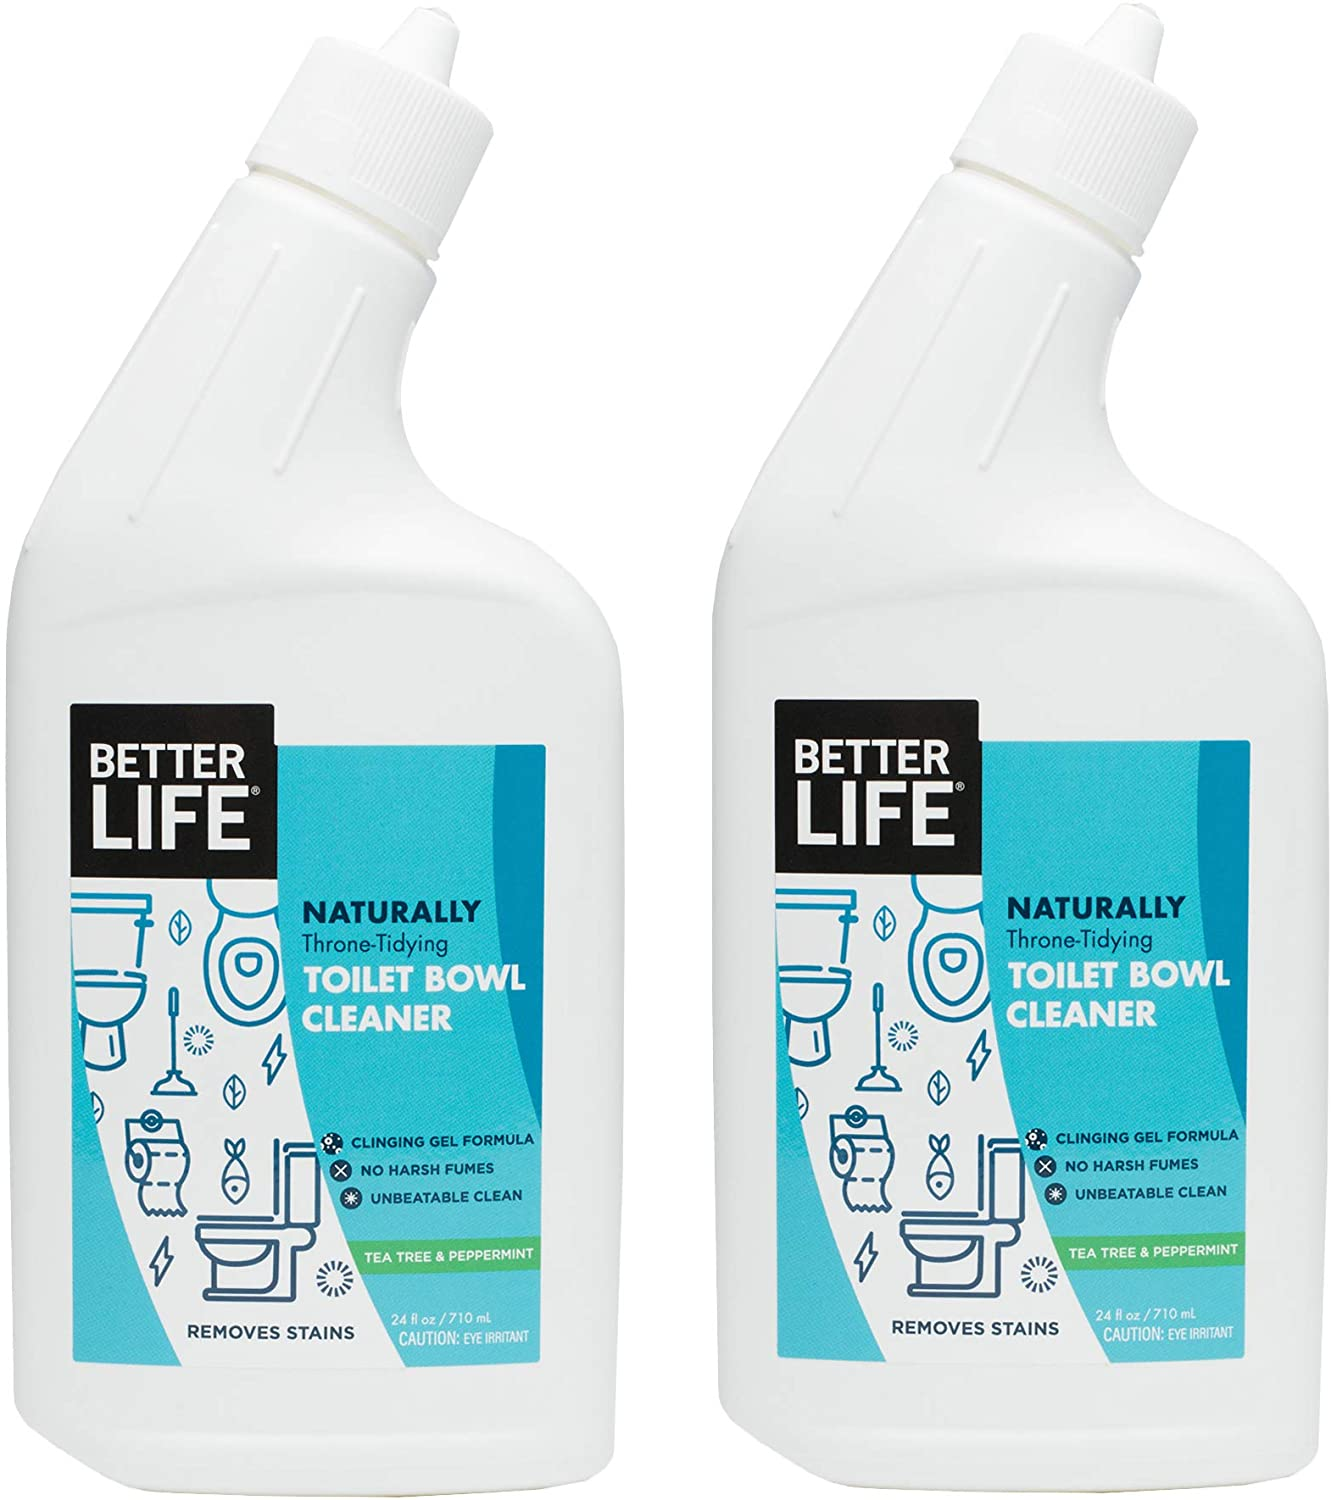 Better Life Natural Toilet Bowl Cleaner, 2-Pack